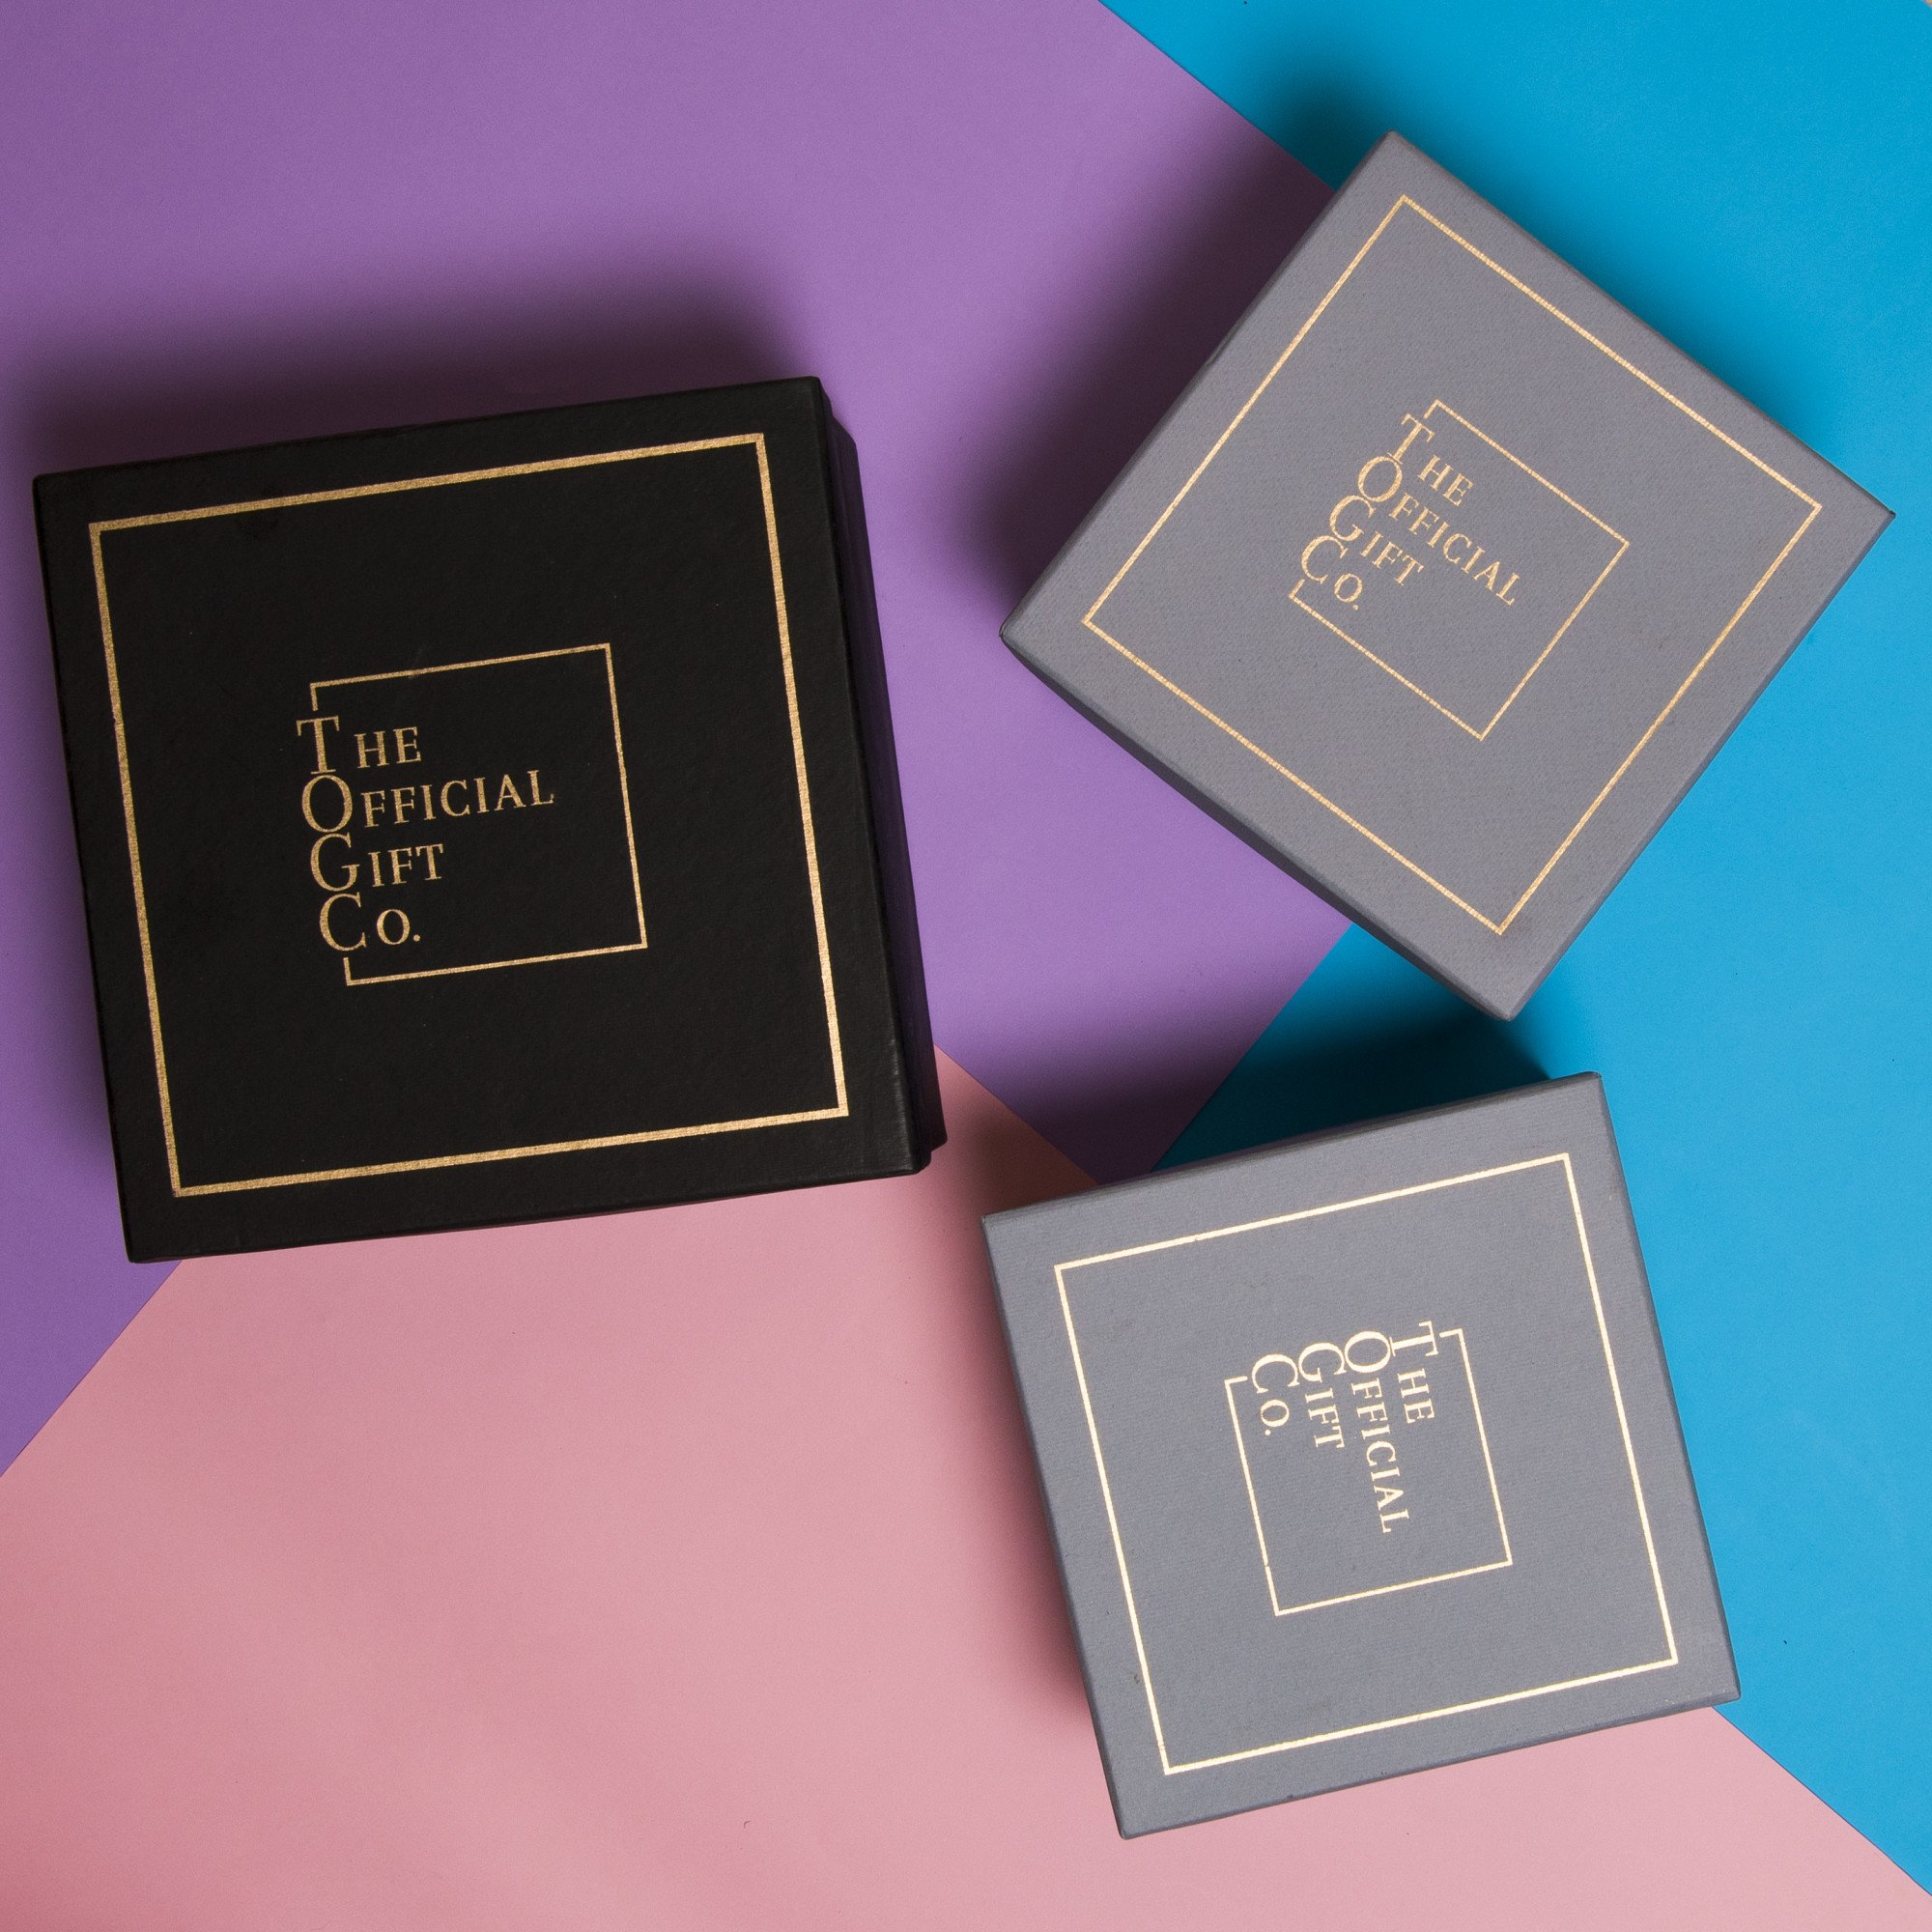 Confused What Gift To Pick? The Official Gift Co Will Curate Something Special For You